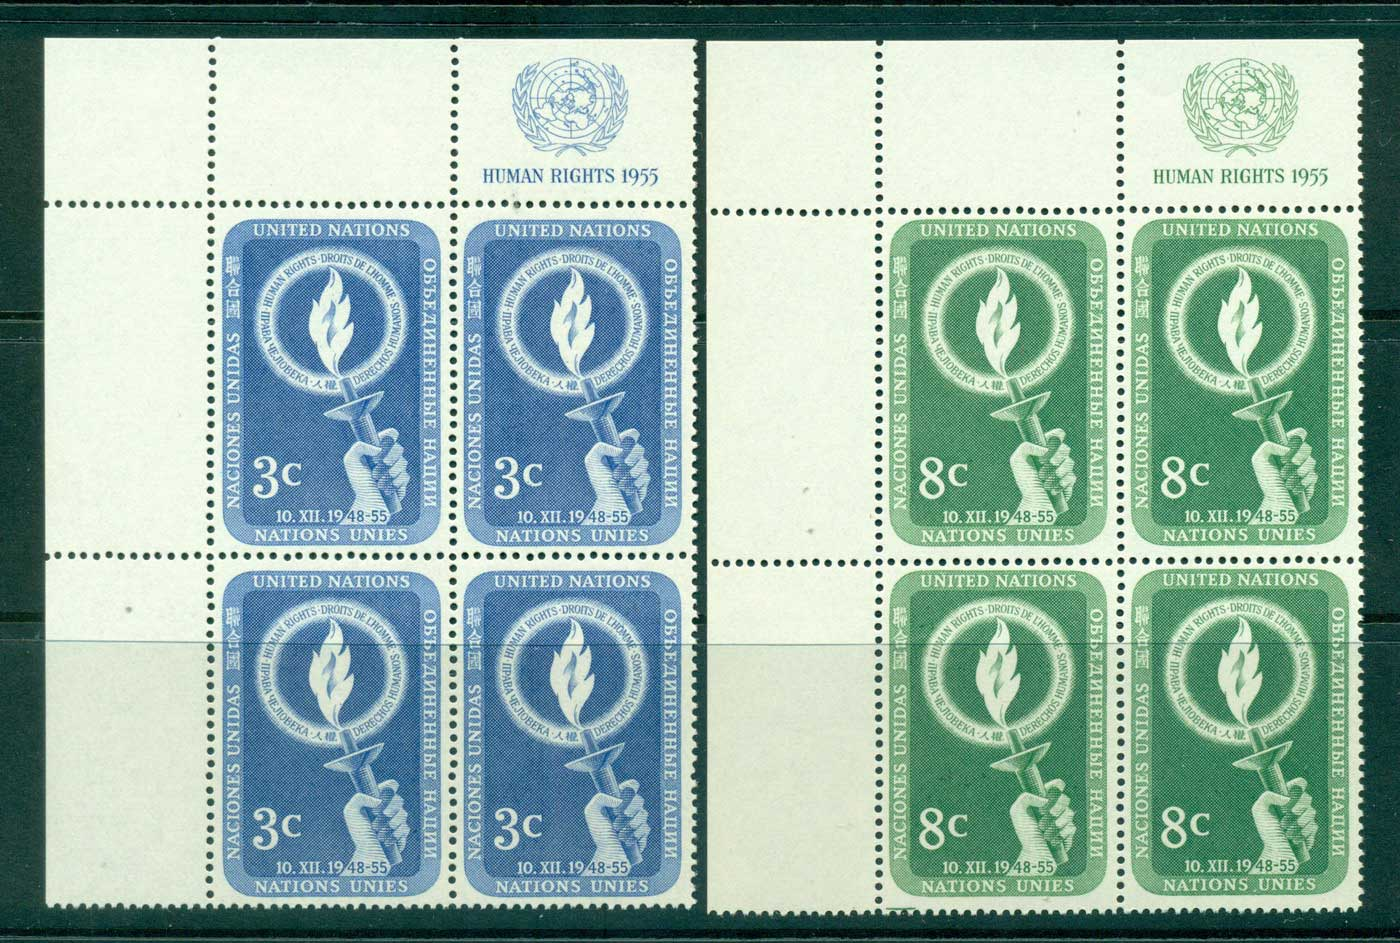 UN New York 1955 Human Rights Day Imprint Blk4 TL MUH lot40867